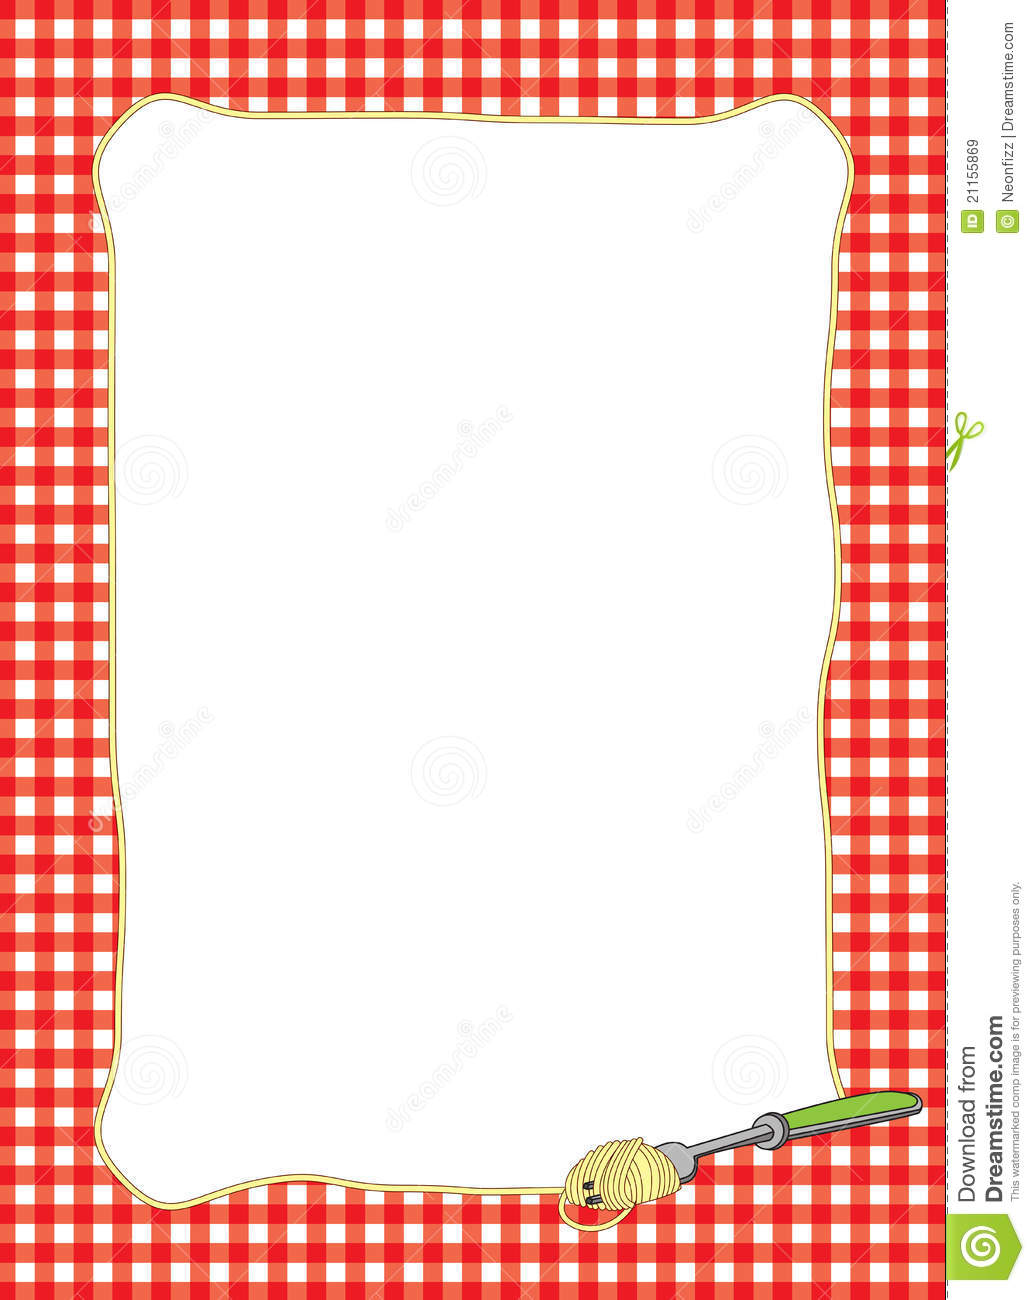 Bright border of a fork twirling a spaghetti noodle with a red gingham